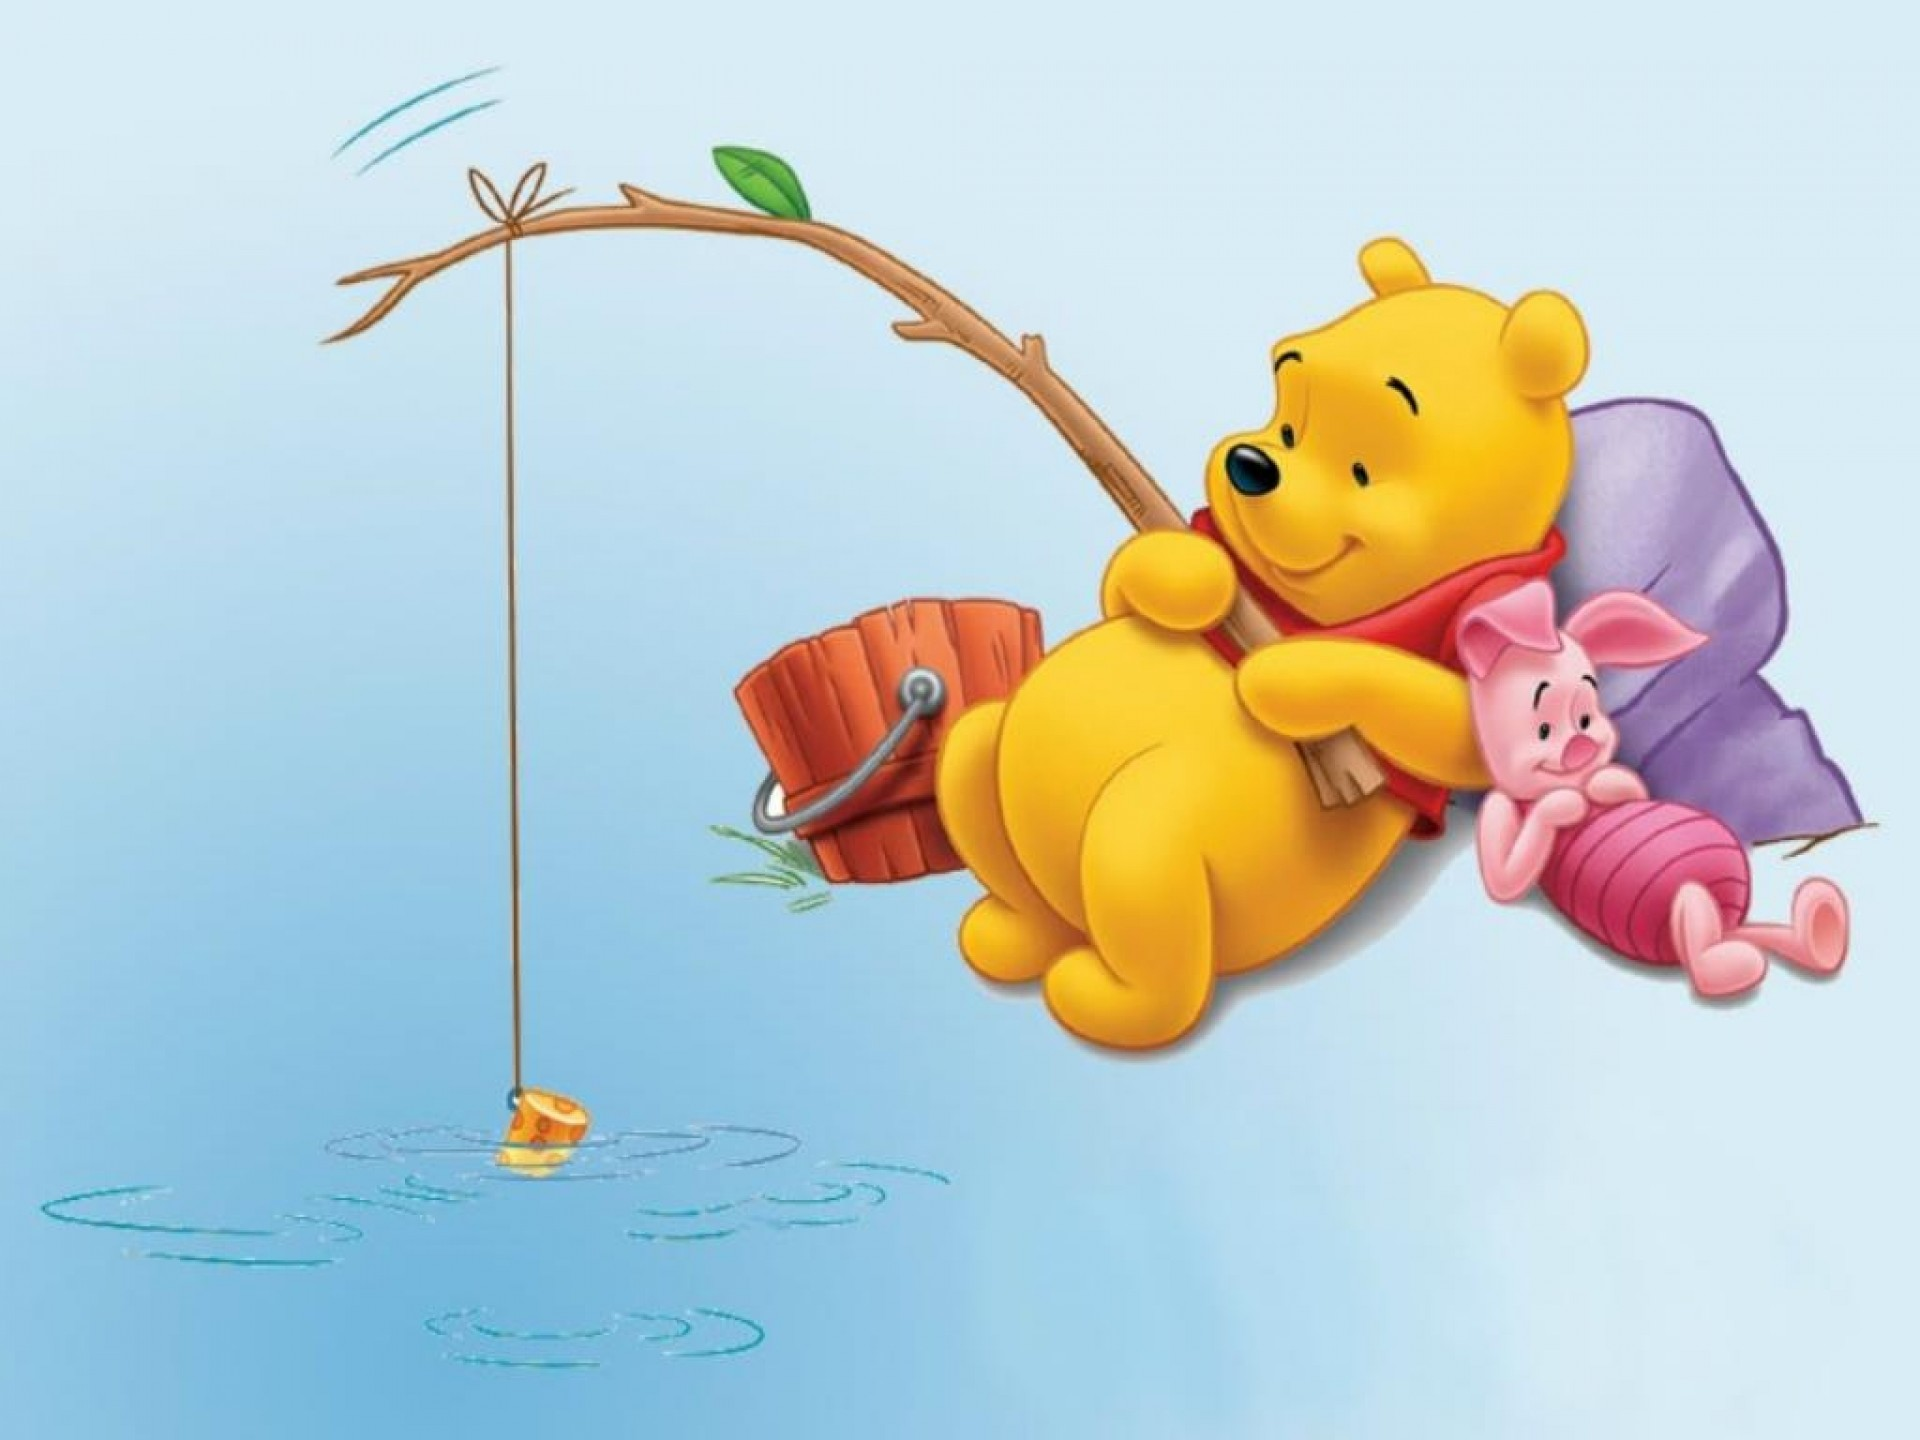 1920x1440 Winnie The Pooh Wallpapers